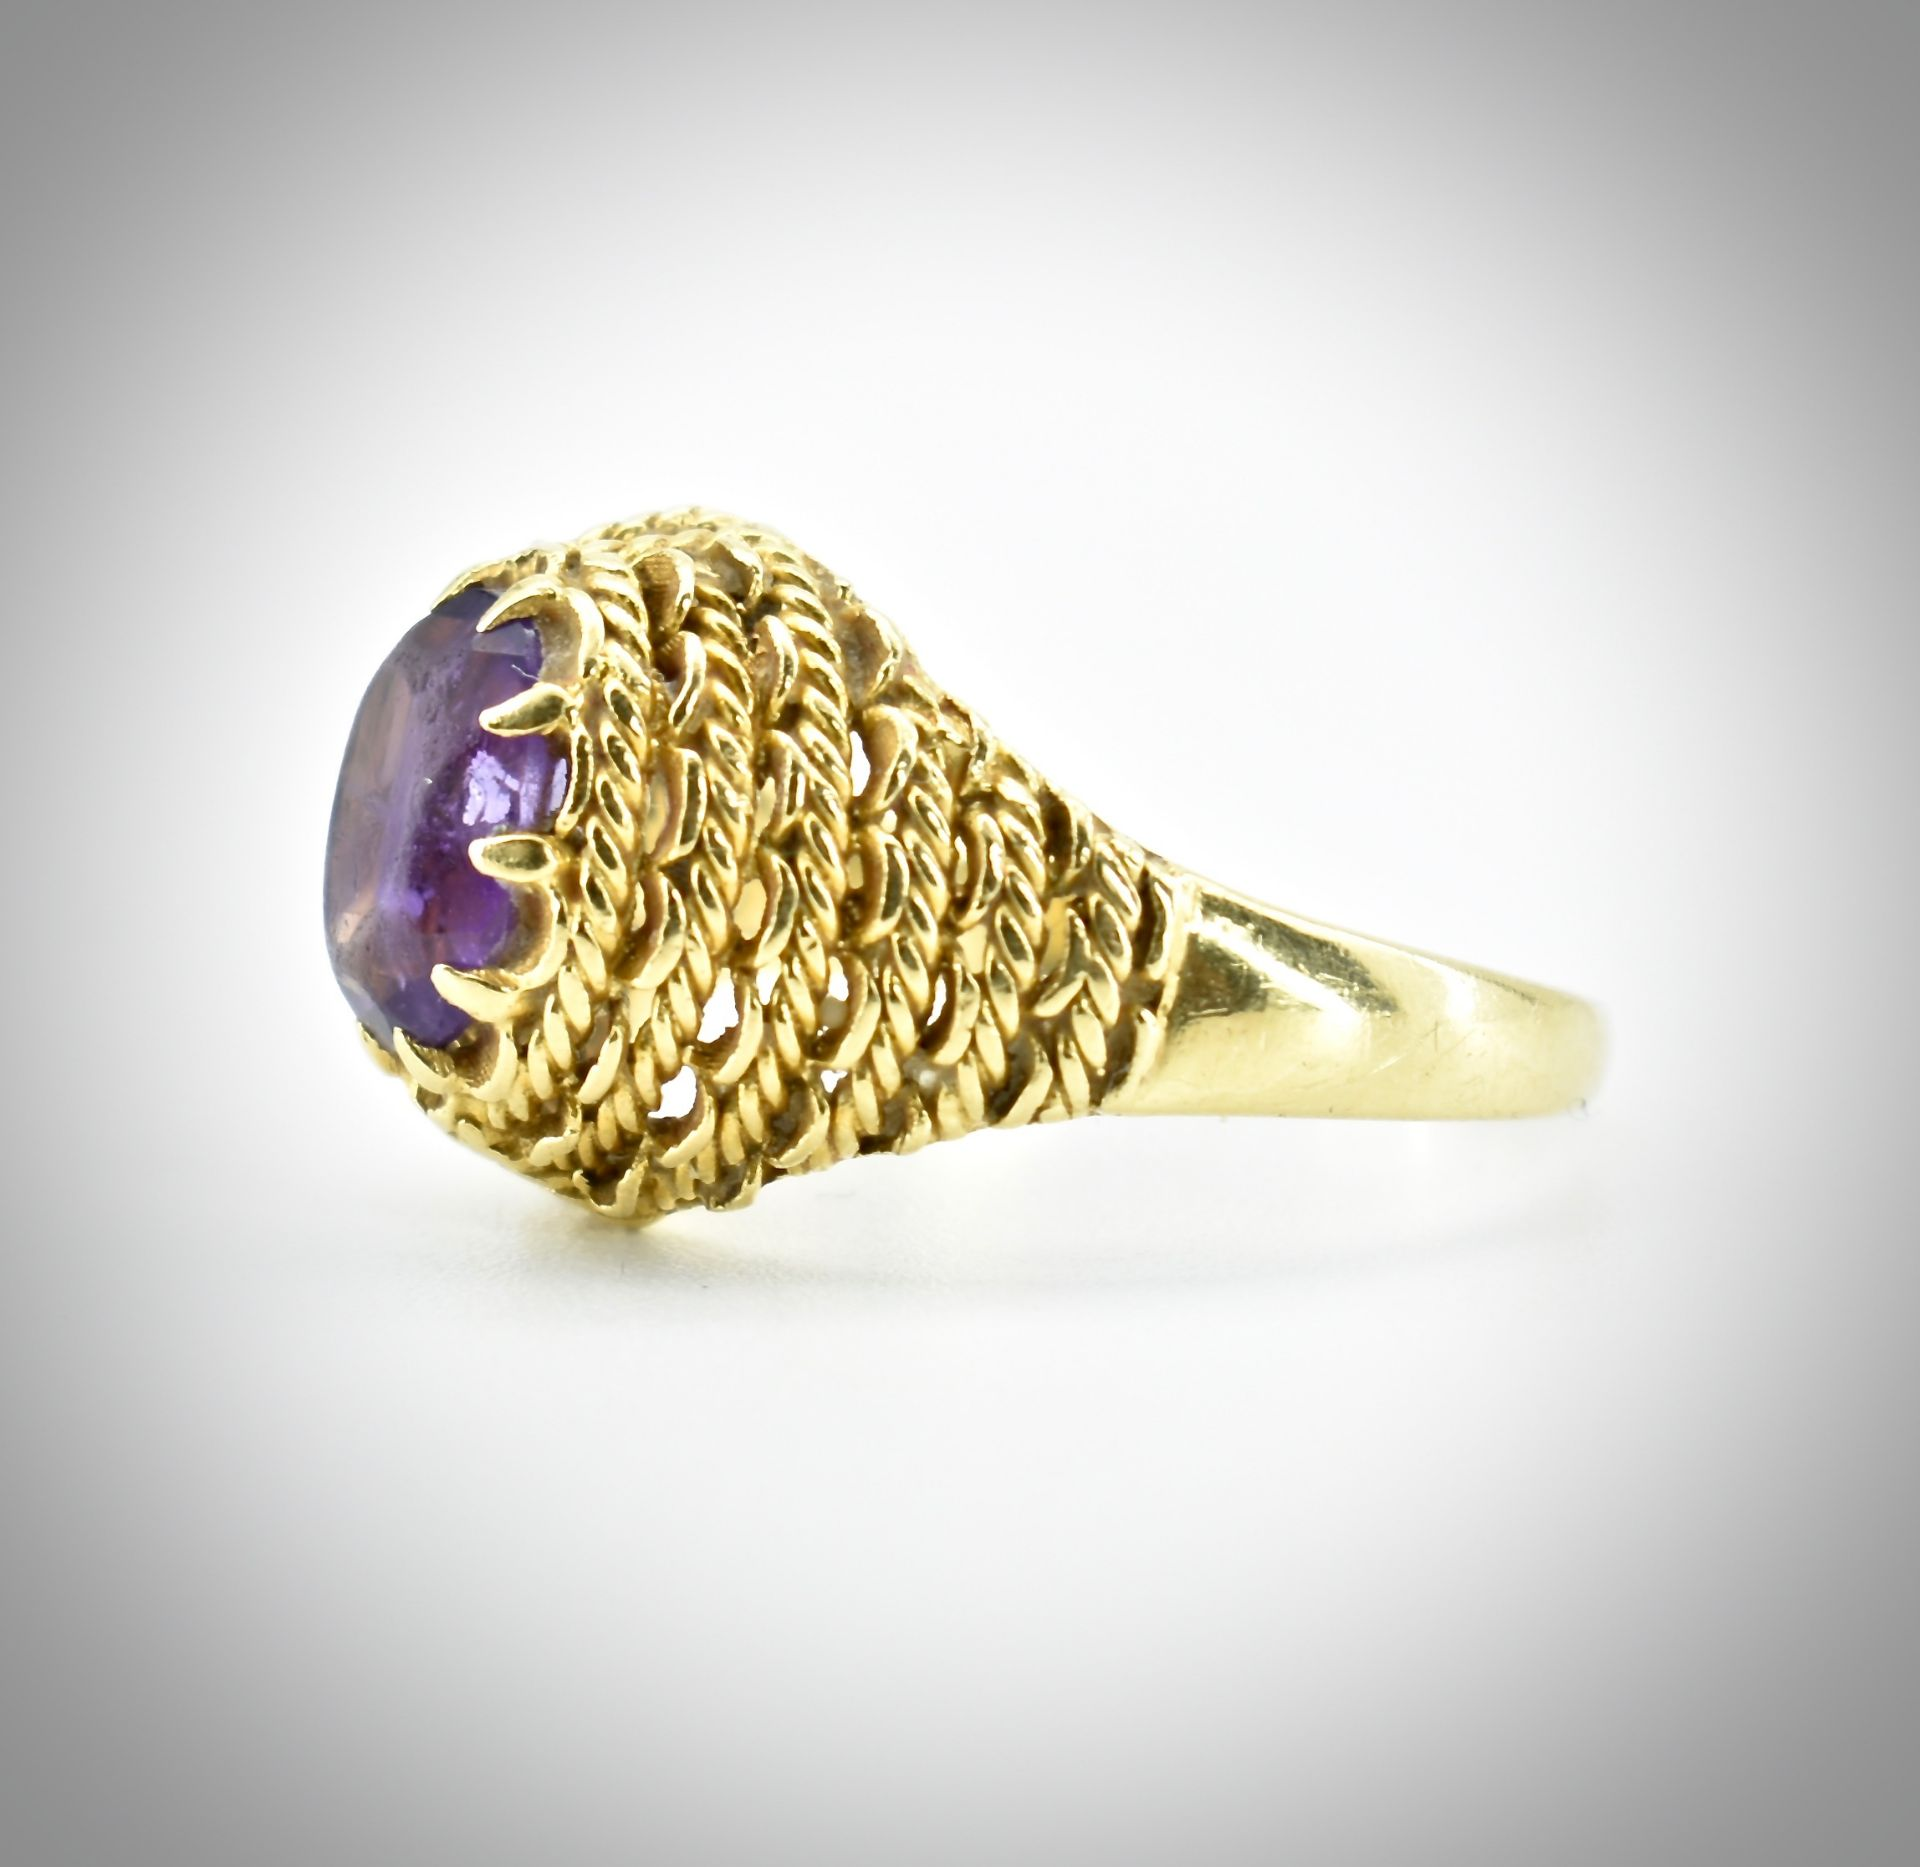 18ct Gold & Amethyst Ring - Image 2 of 7